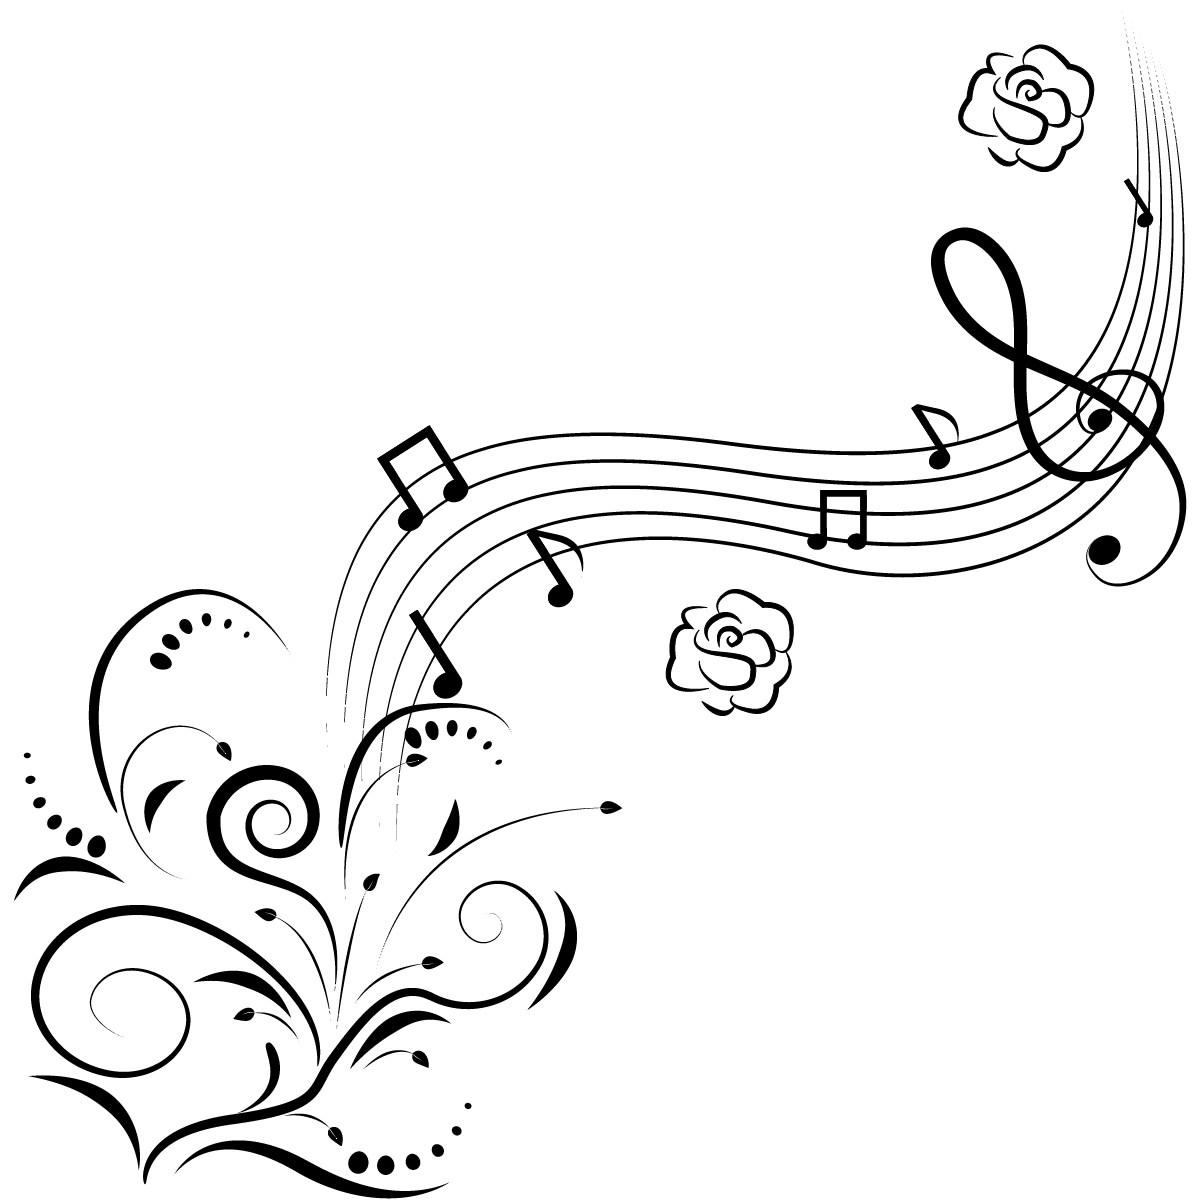 1200x1200 Music Note Coloring Page Design Radio For The People